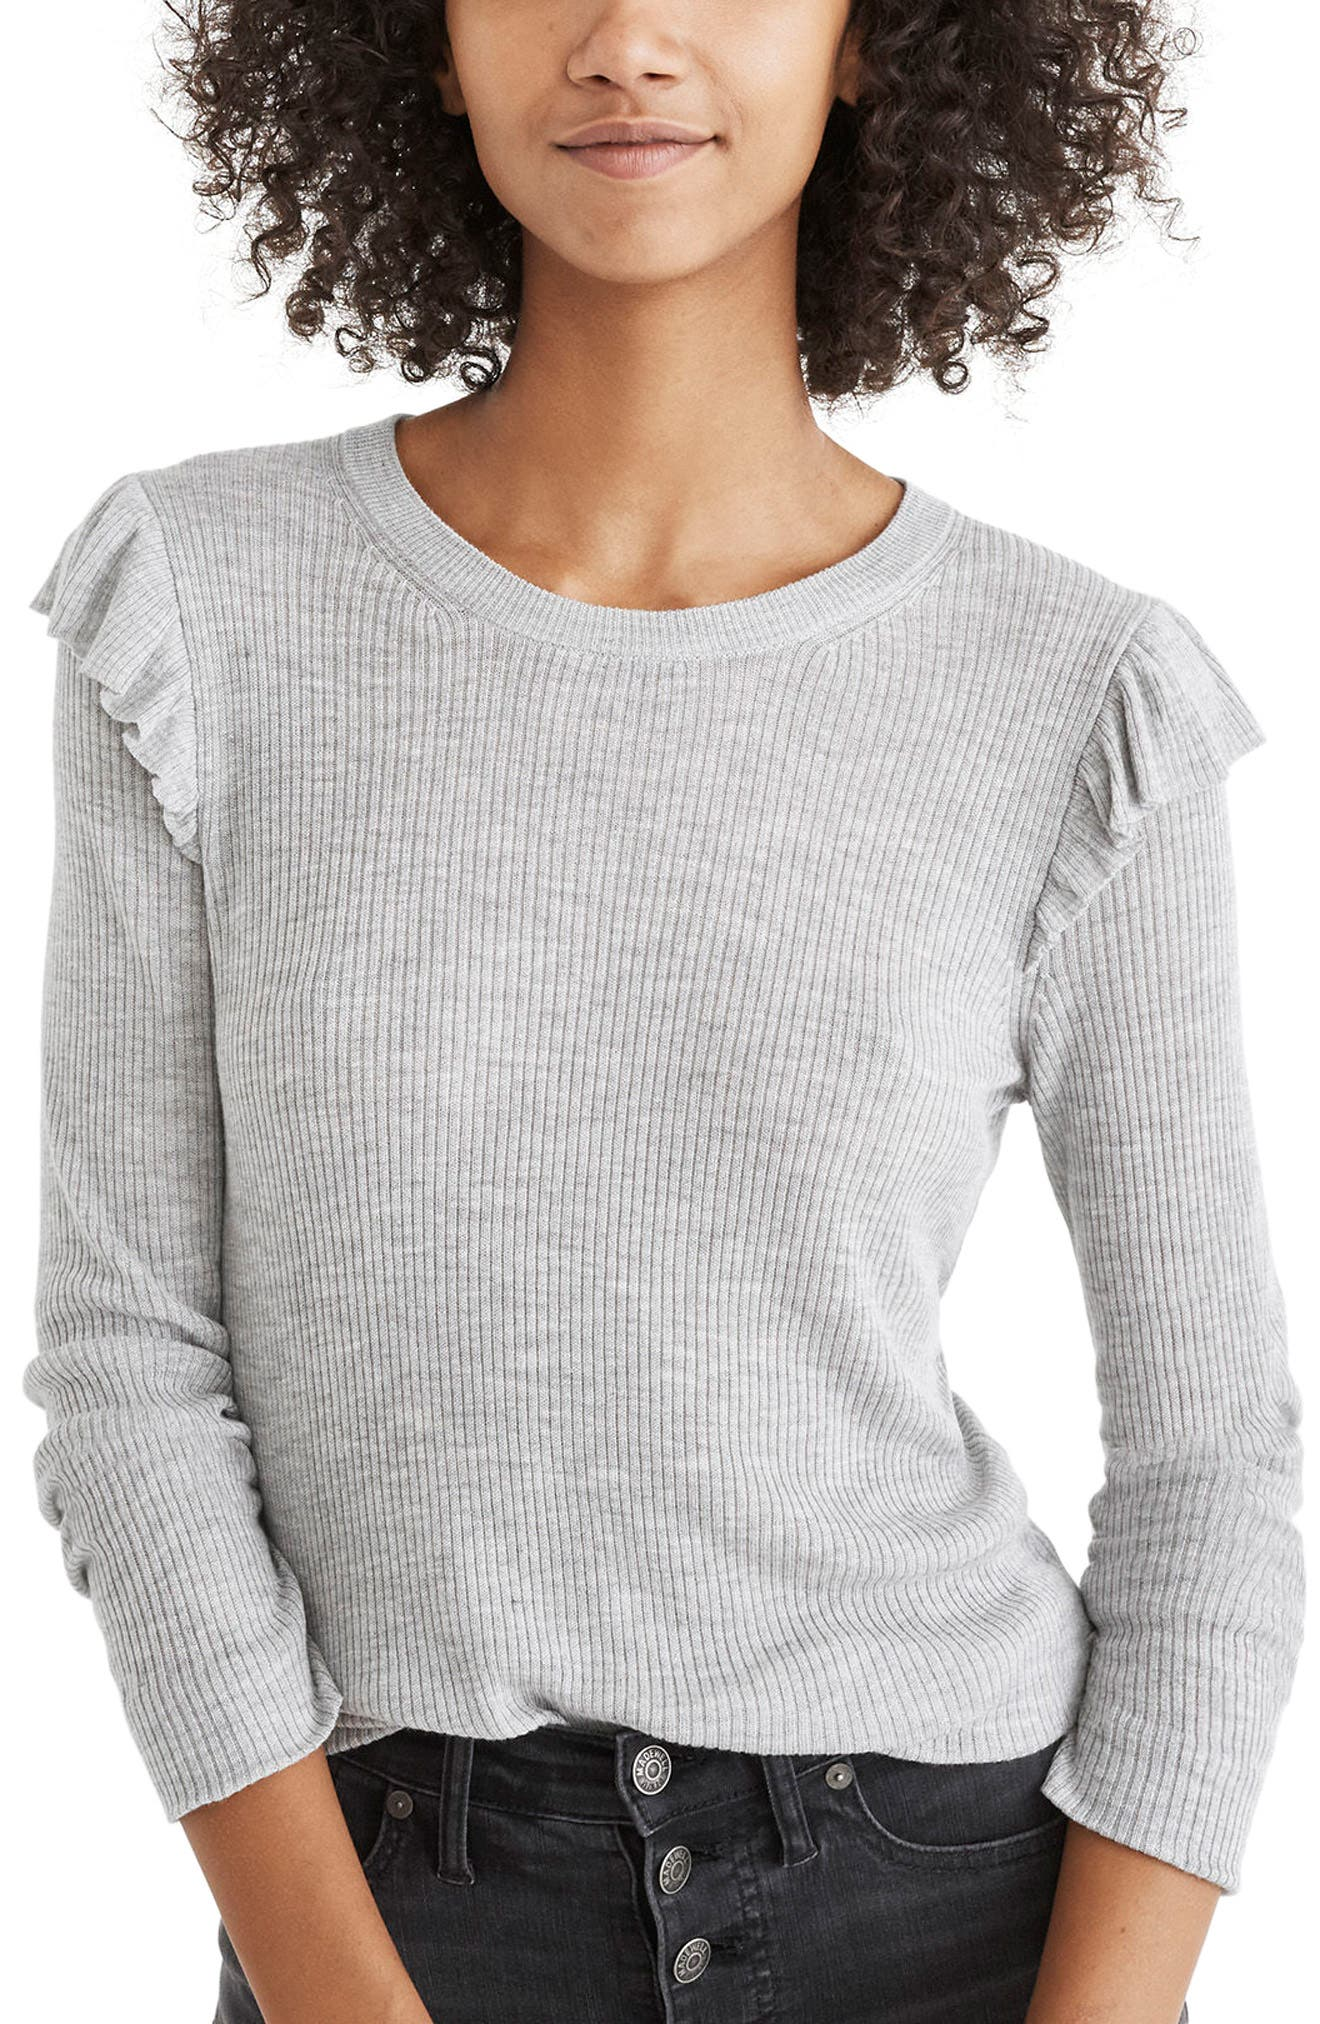 Ruffle Sleeve Pullover Sweater,                             Main thumbnail 1, color,                             Heather Nickle